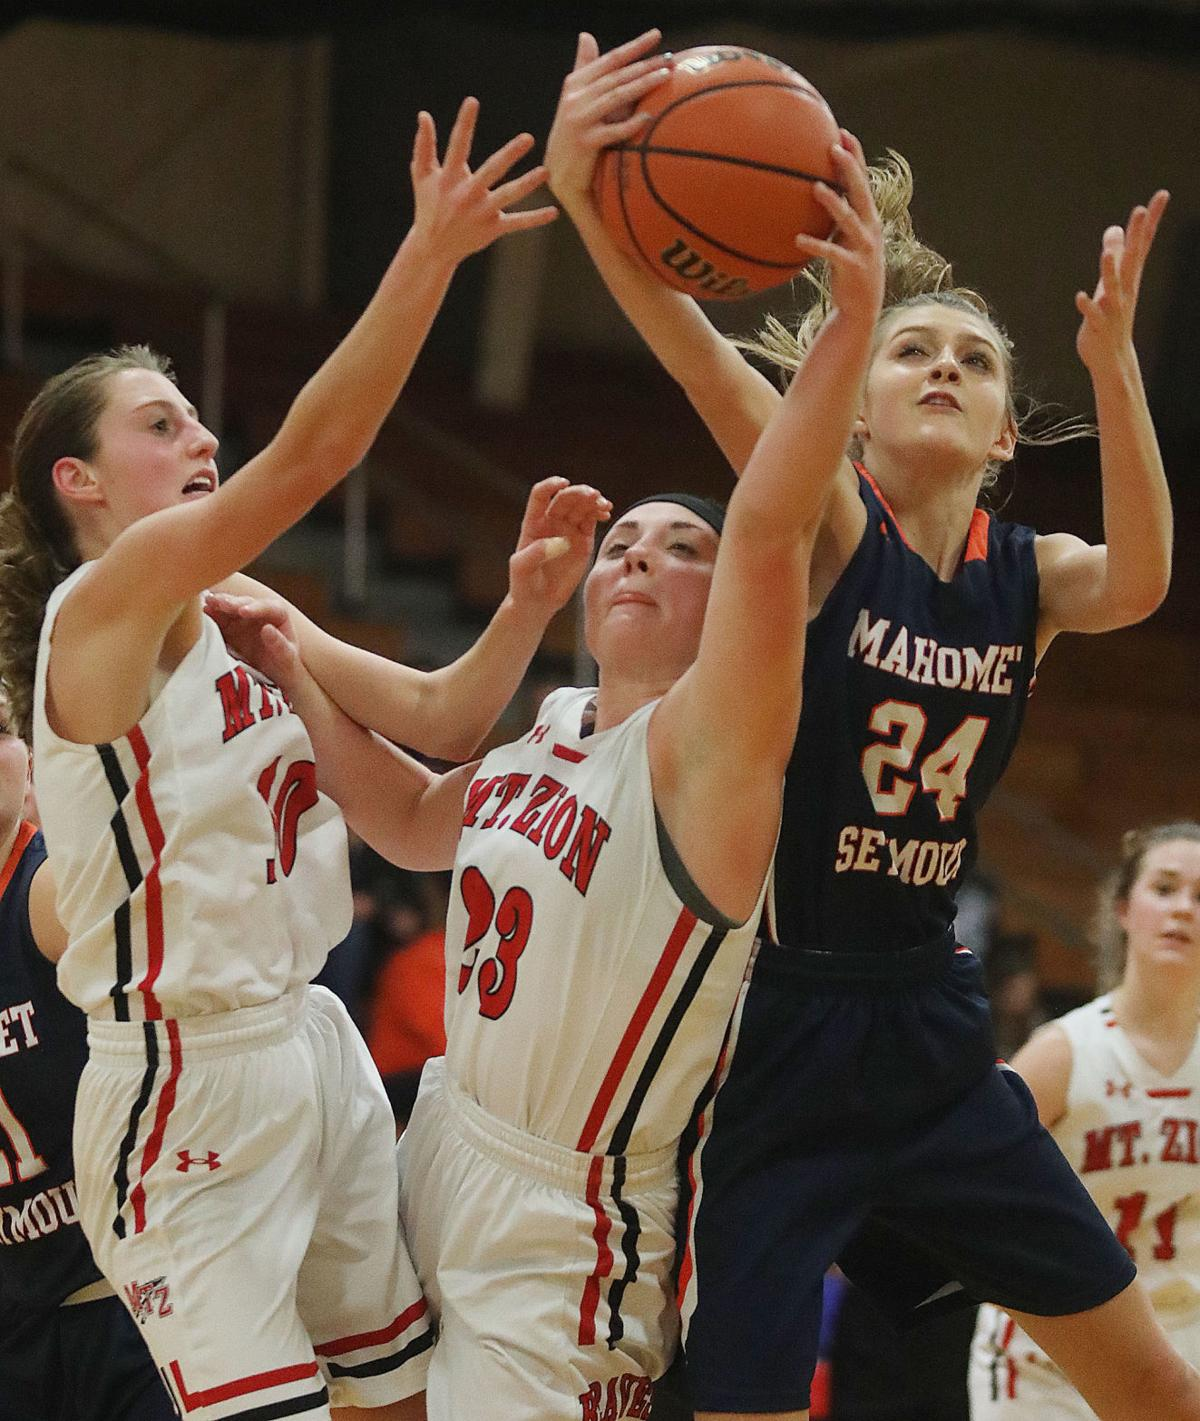 GIRLS BASKETBALL ROUNDUP: Mount Zion defeats Mahomet-Seymour